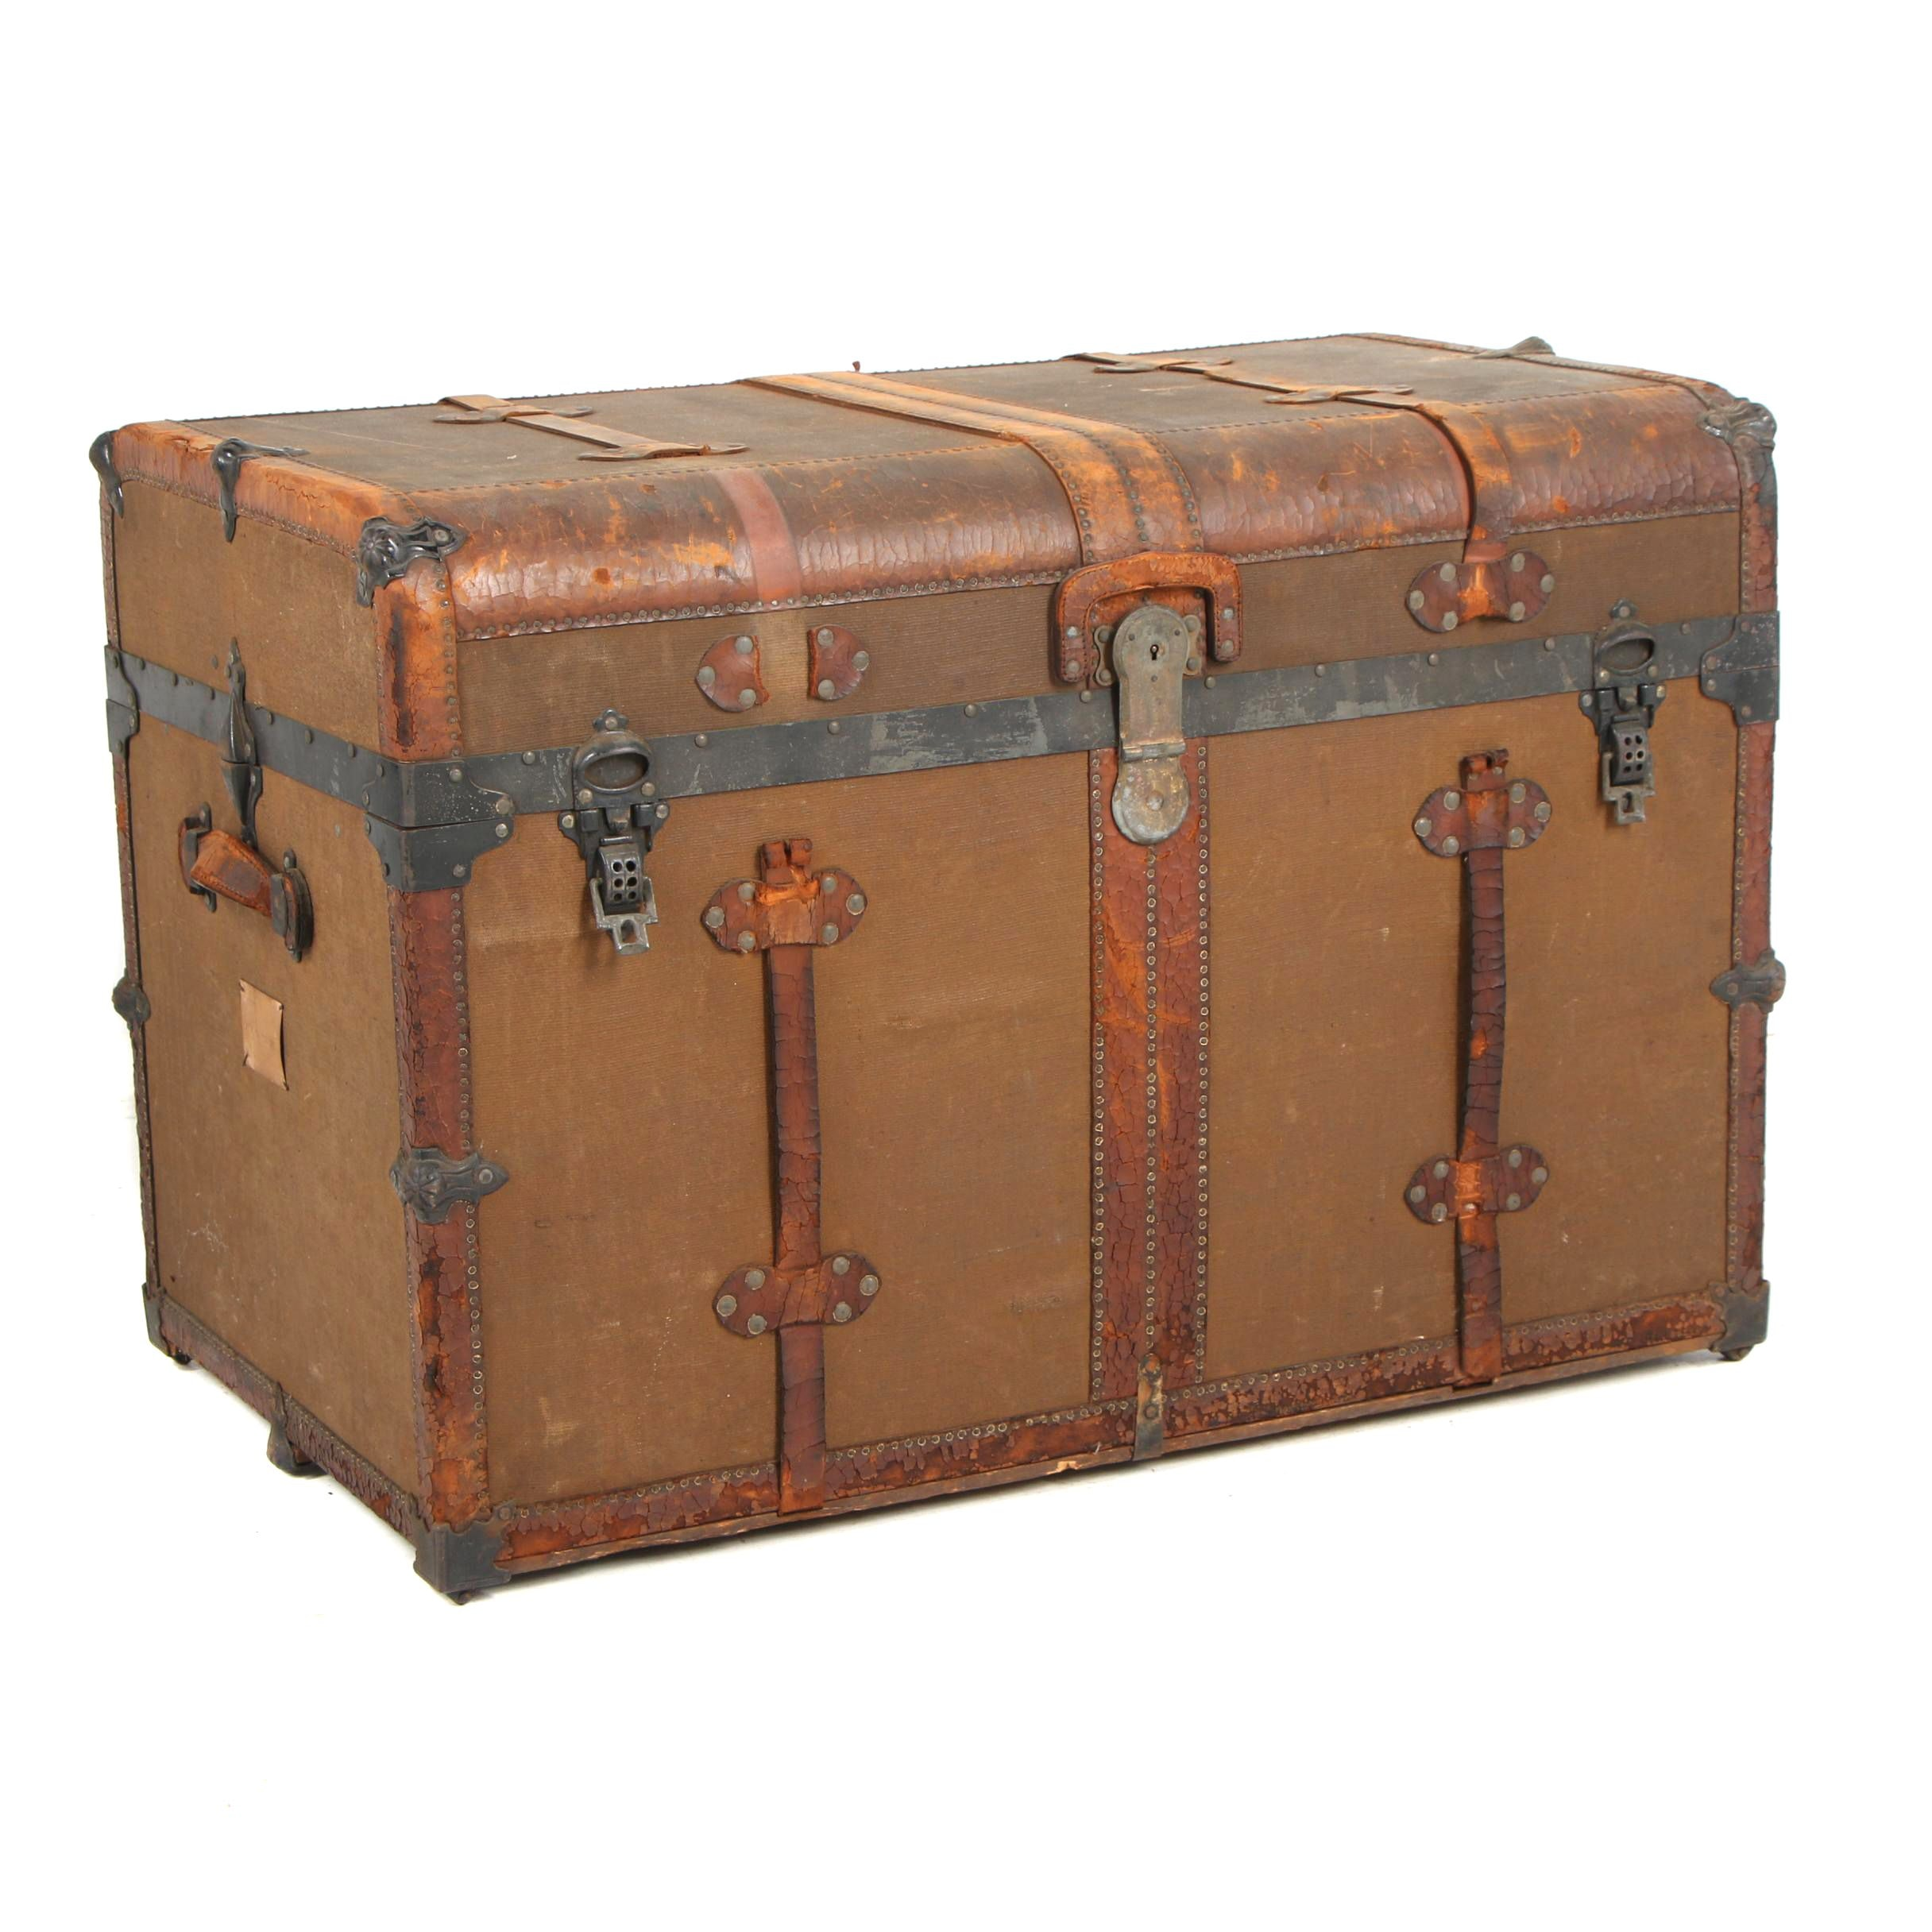 H.W. Rountree & Bro. Trunk & Bag Co. Wood and Metal Steamer Trunk, circa 1900